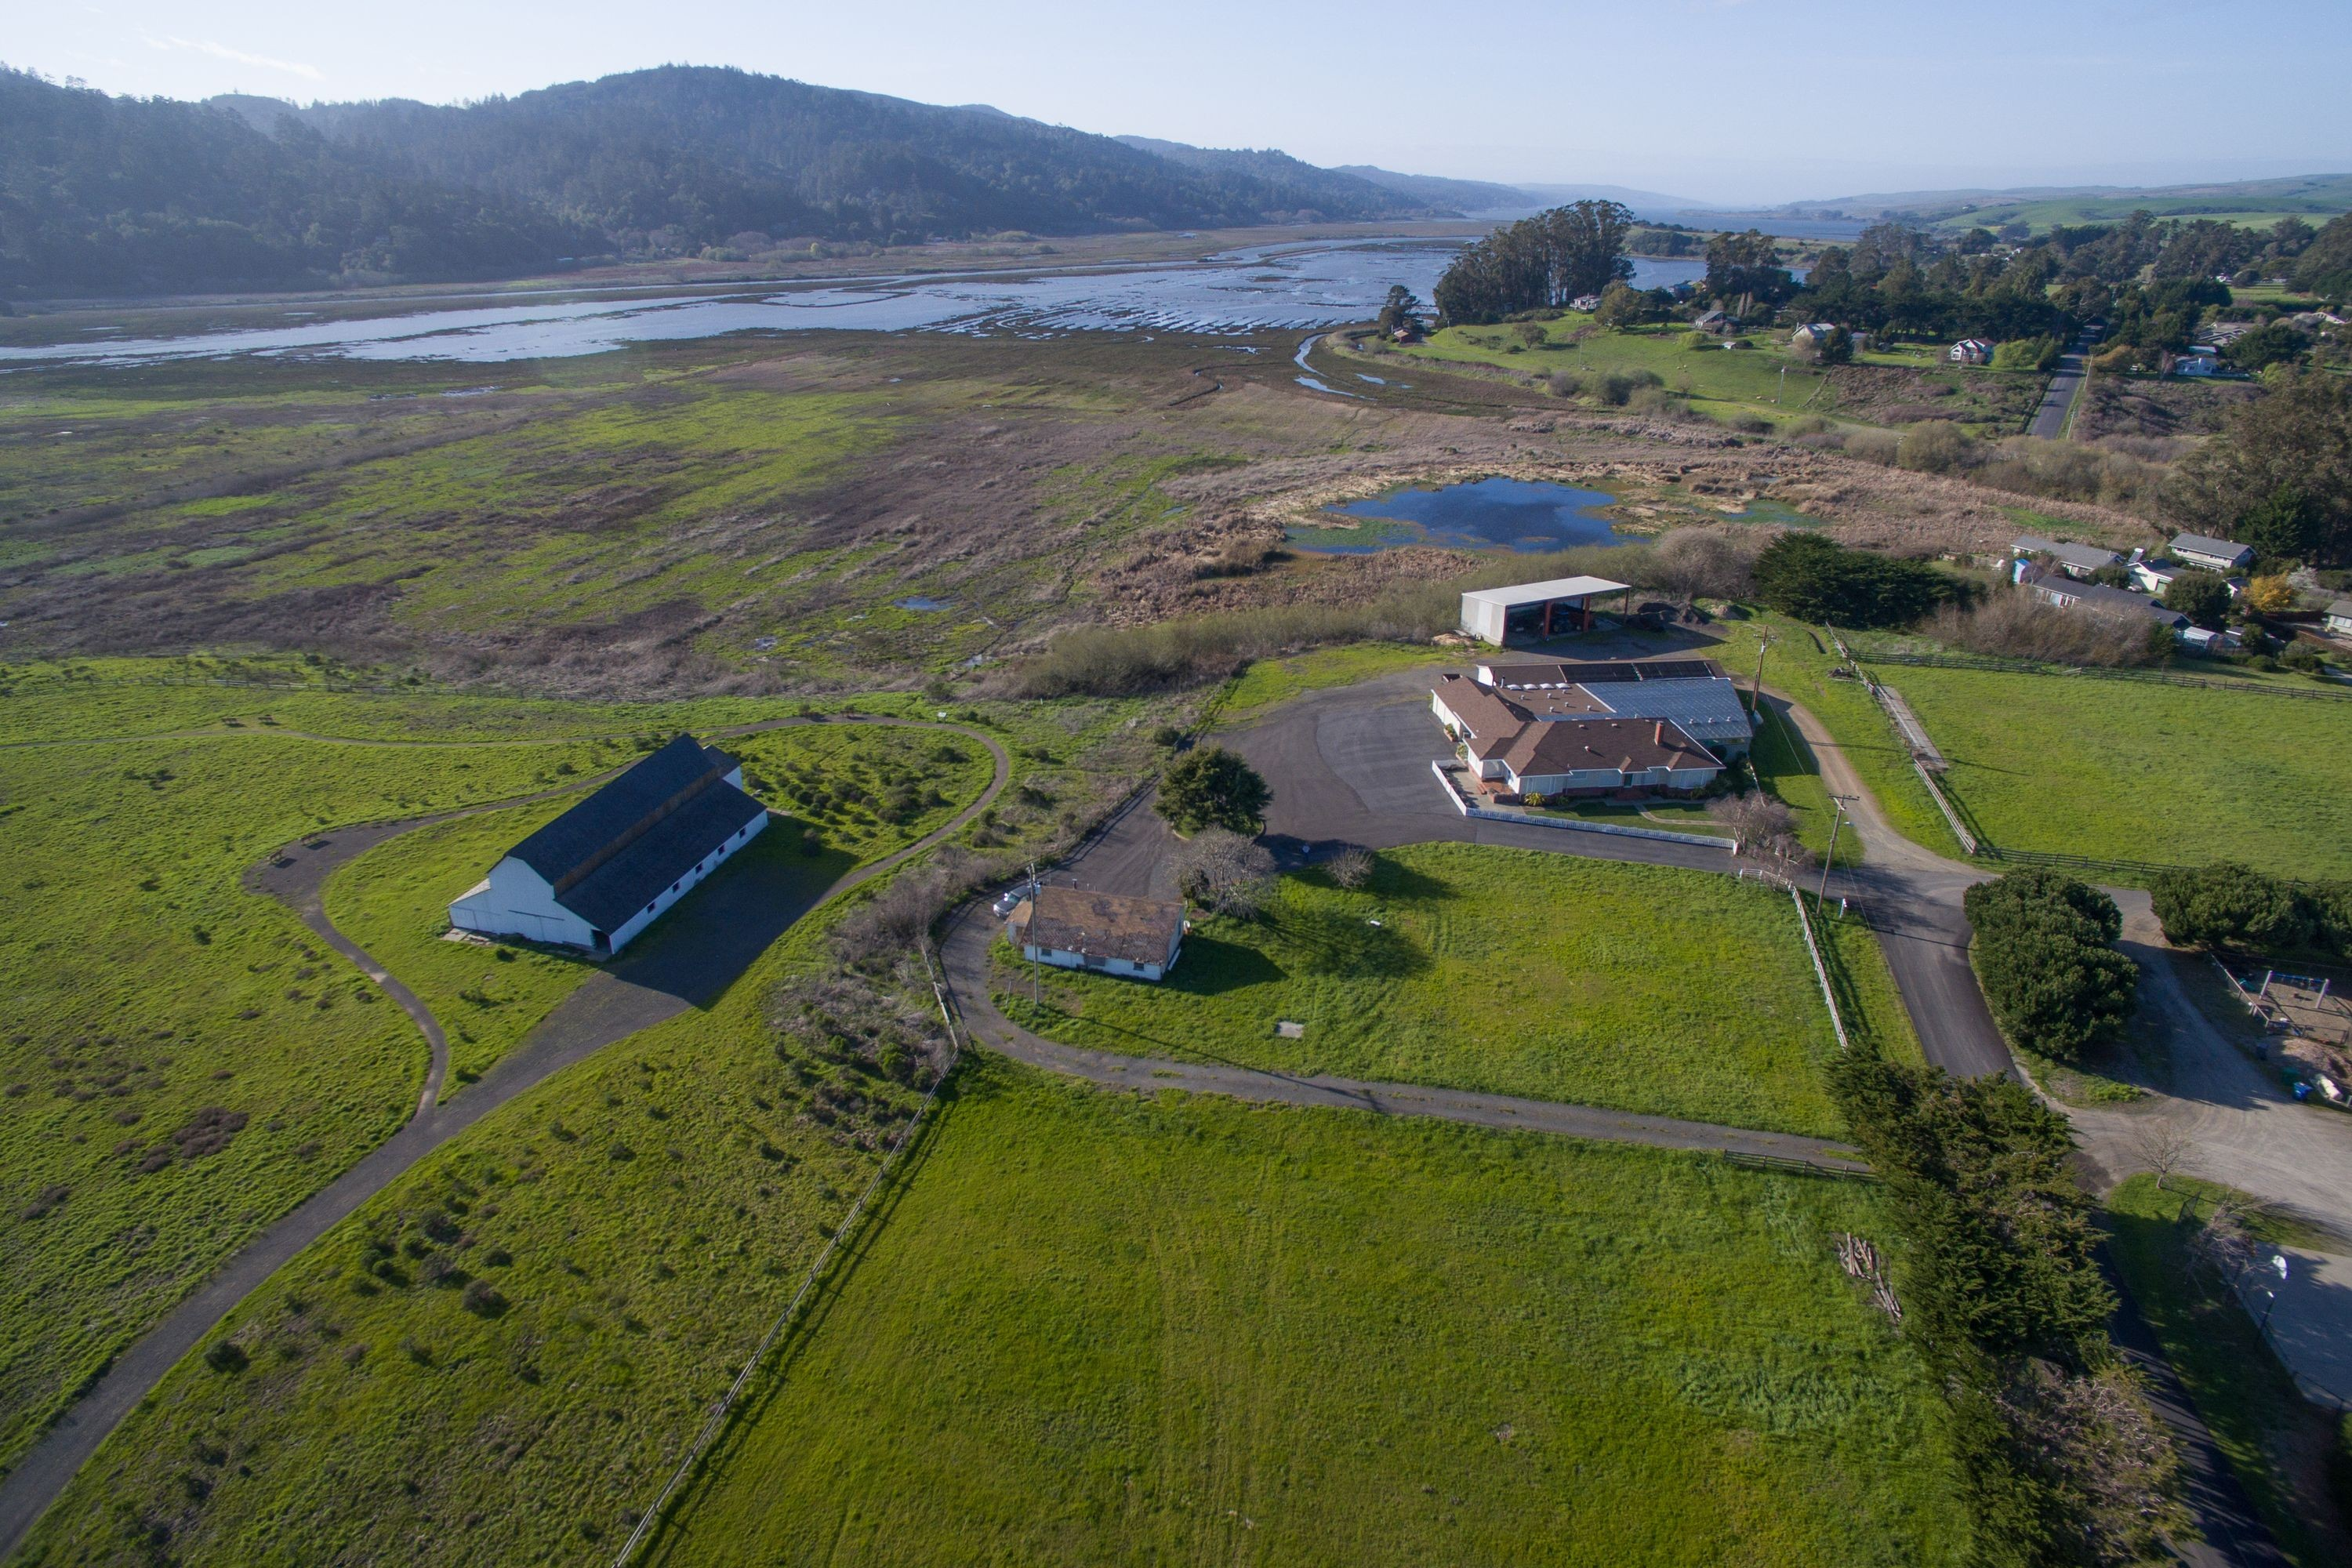 Casa Unifamiliar por un Venta en Iconic West Marin Property 701 C Street Point Reyes Station, California, 94956 Estados Unidos